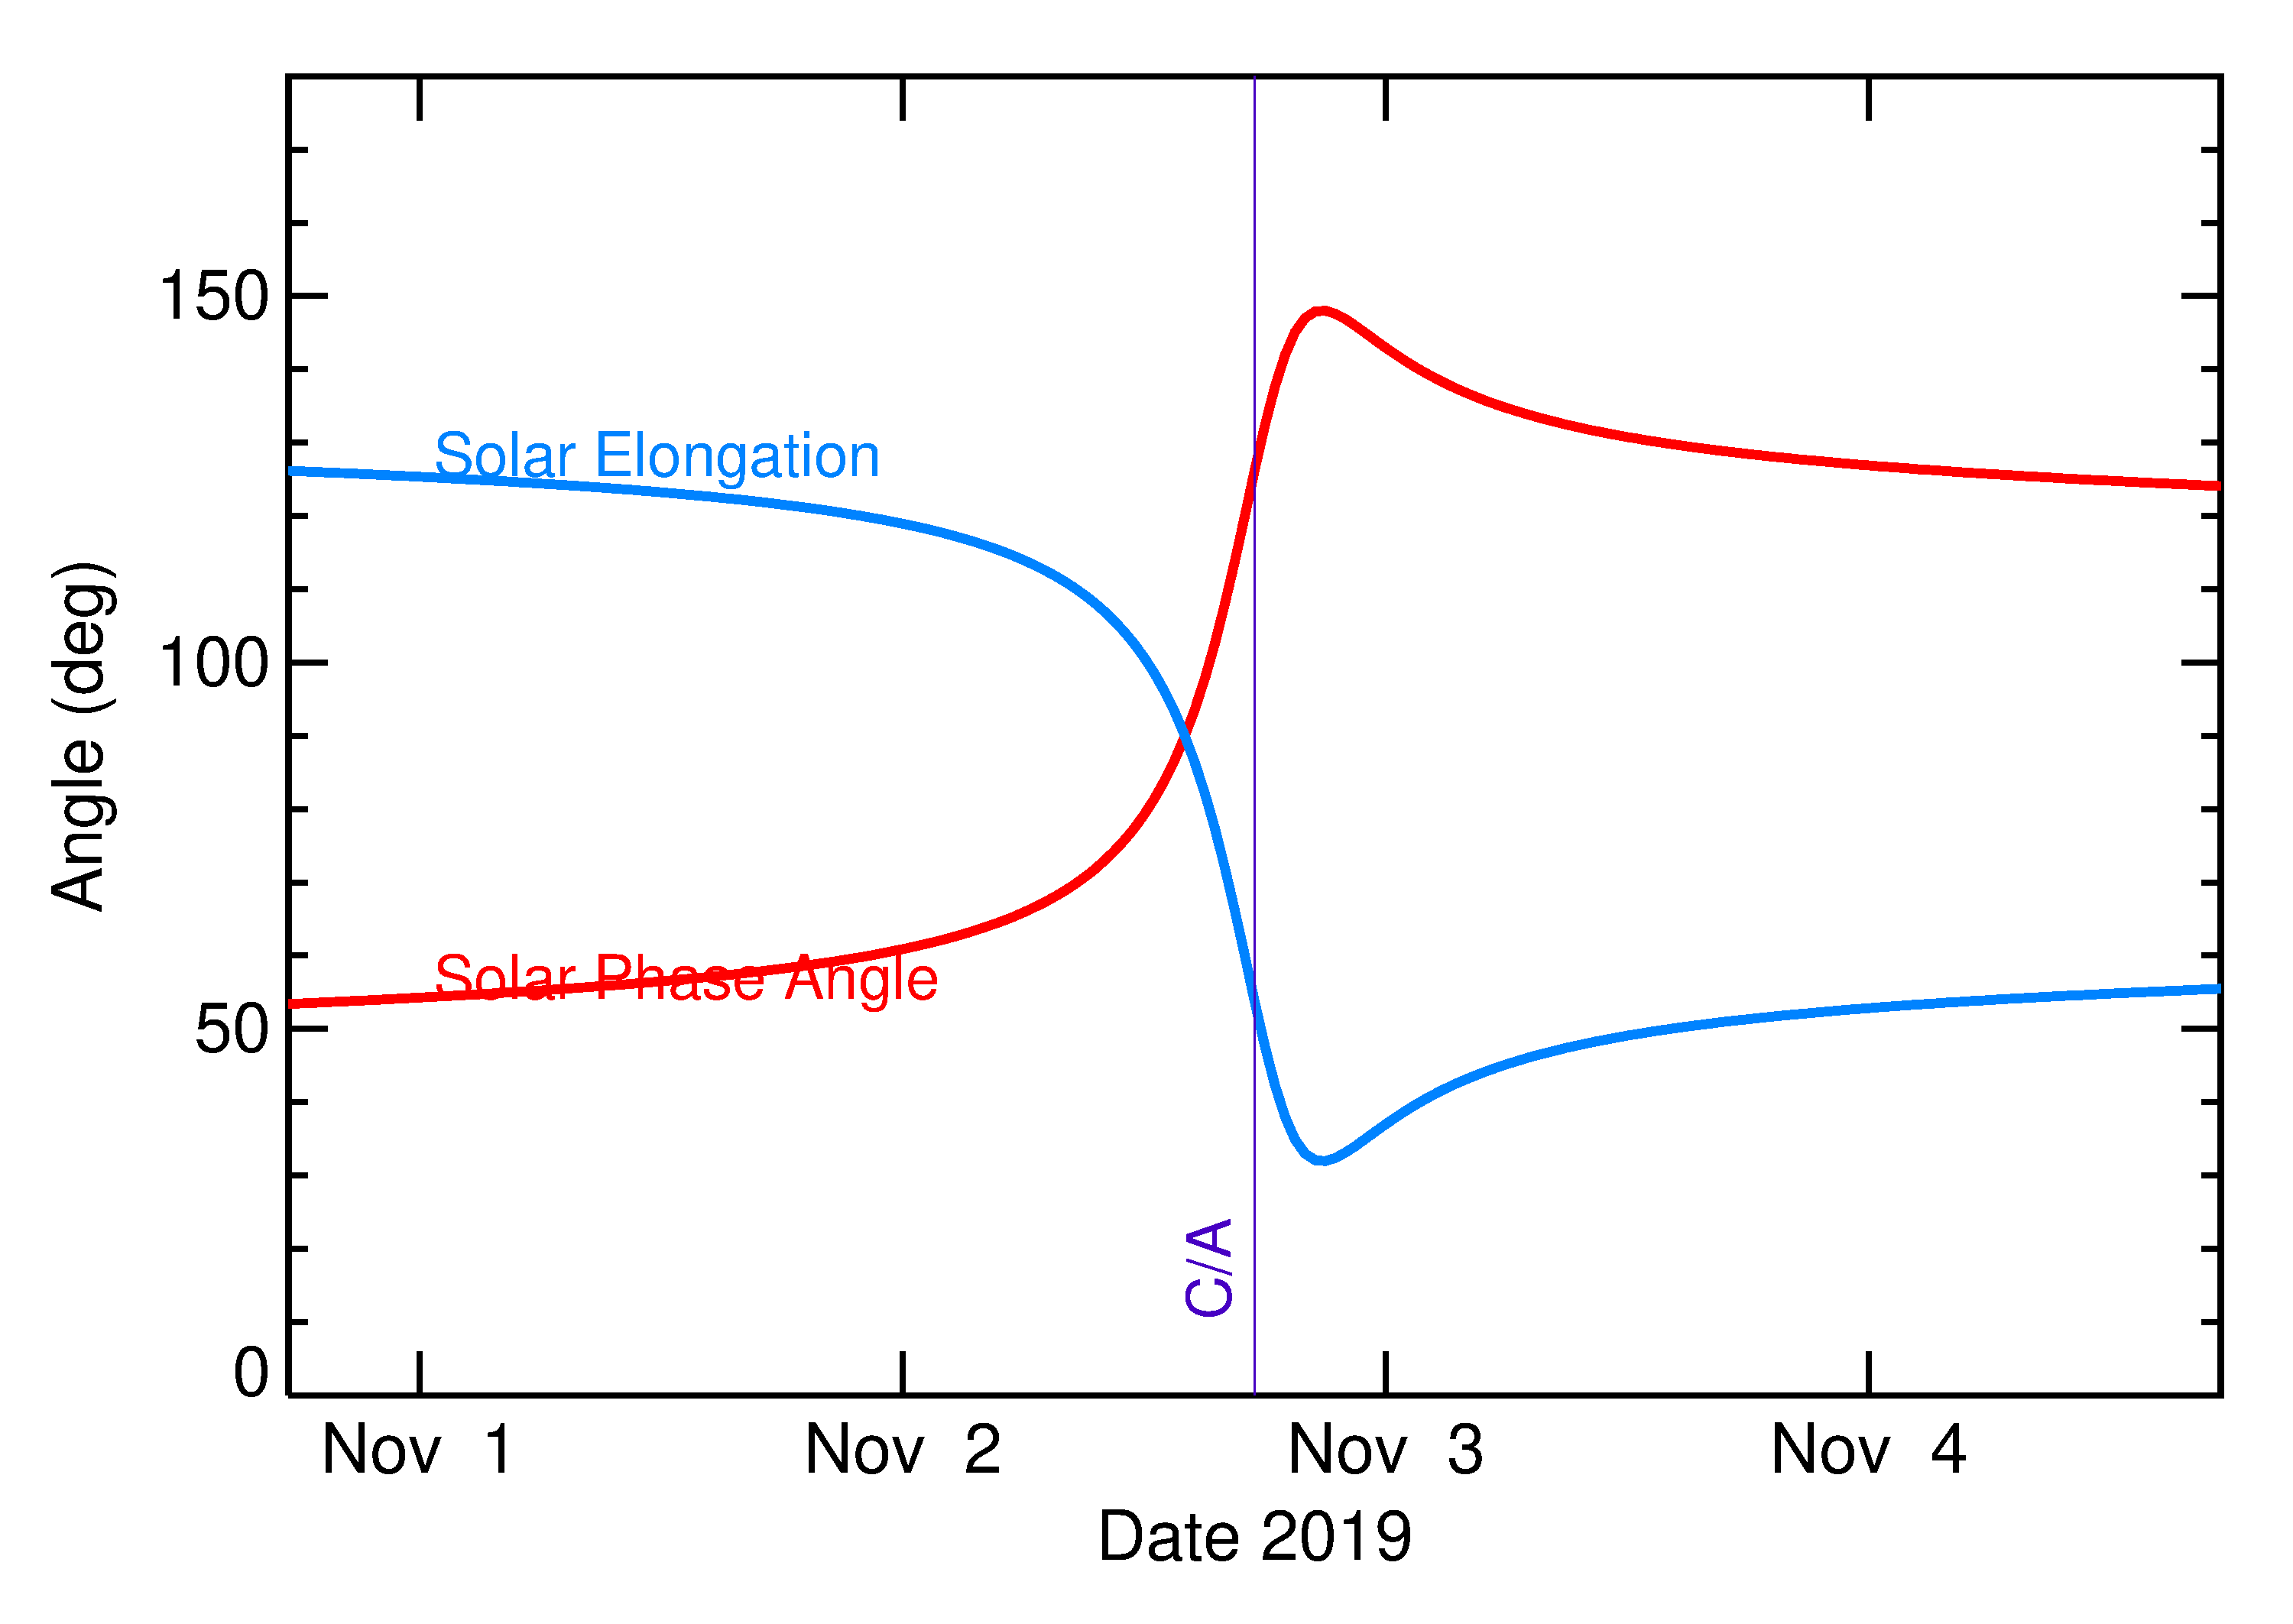 Solar Elongation and Solar Phase Angle of 2019 VA in the days around closest approach